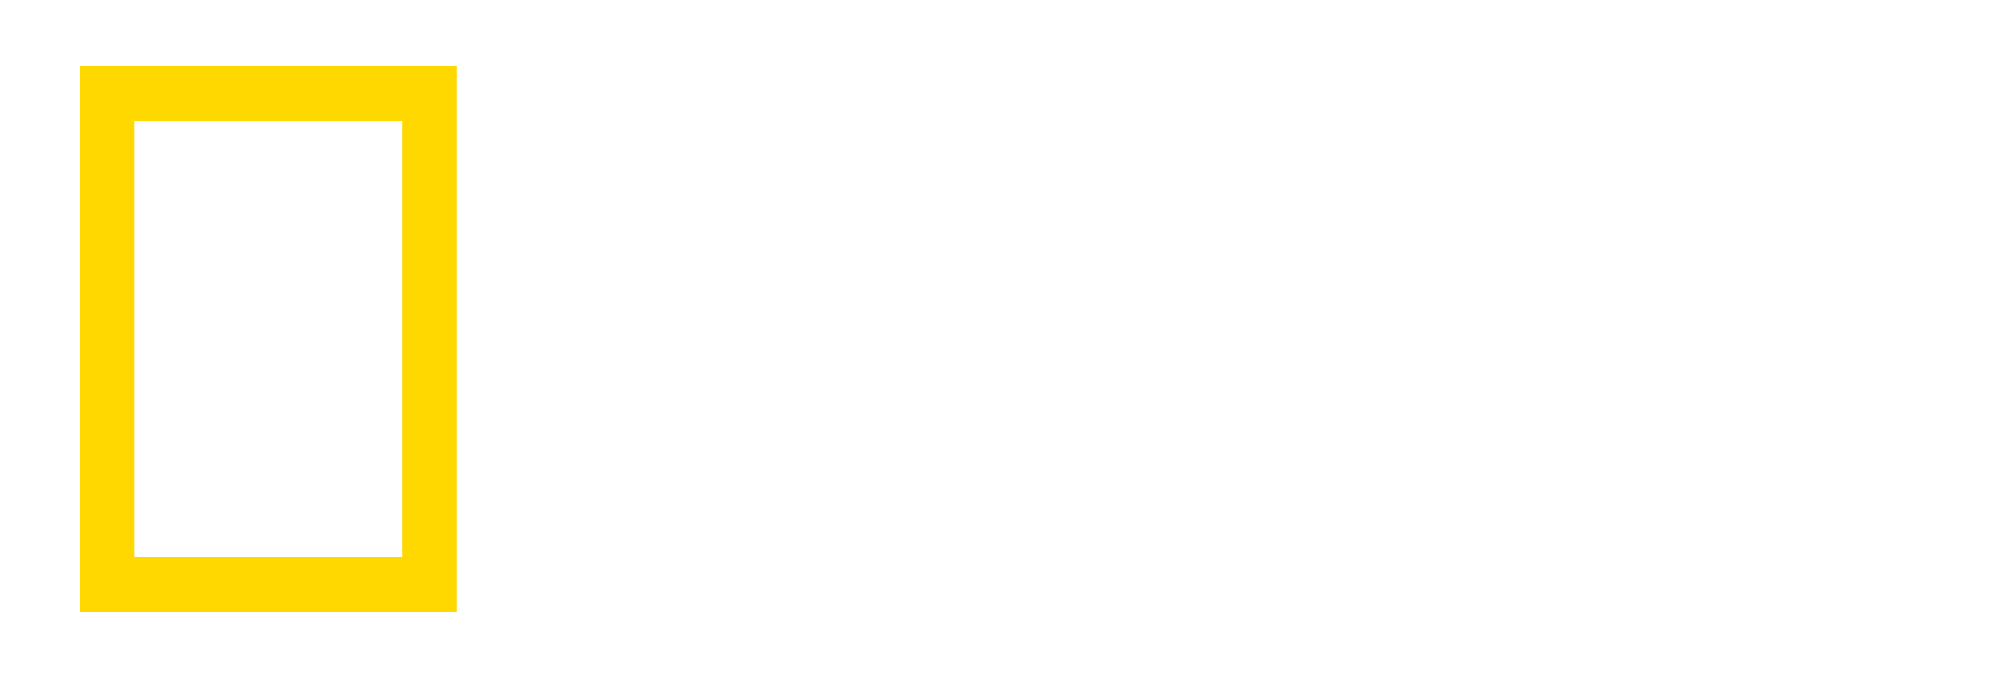 National Geographic Channel Logo PNG - 34231